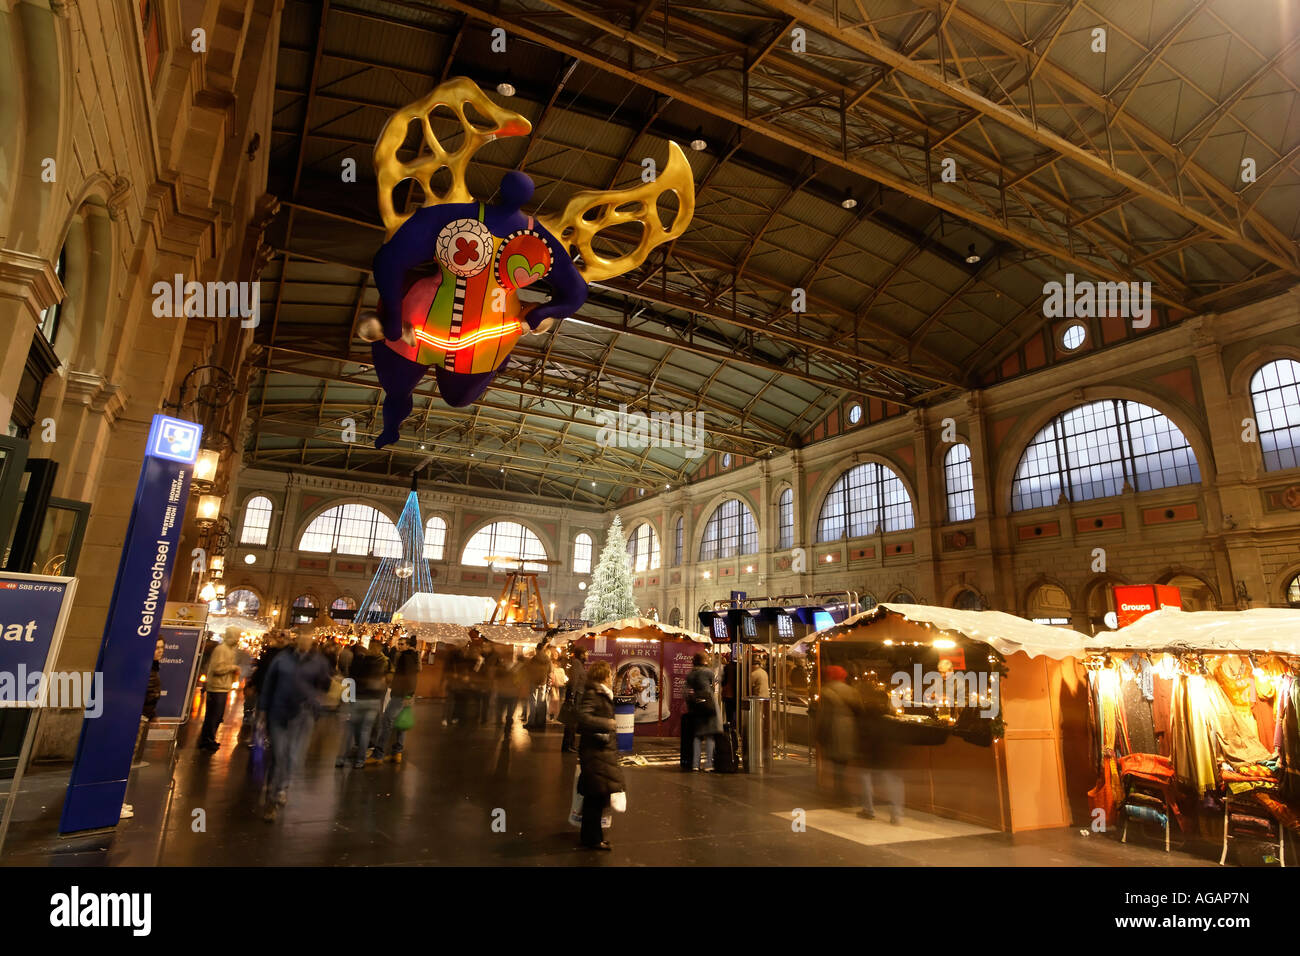 Zuerich main station christmas decoration interieur niki for Decoration noel interieur